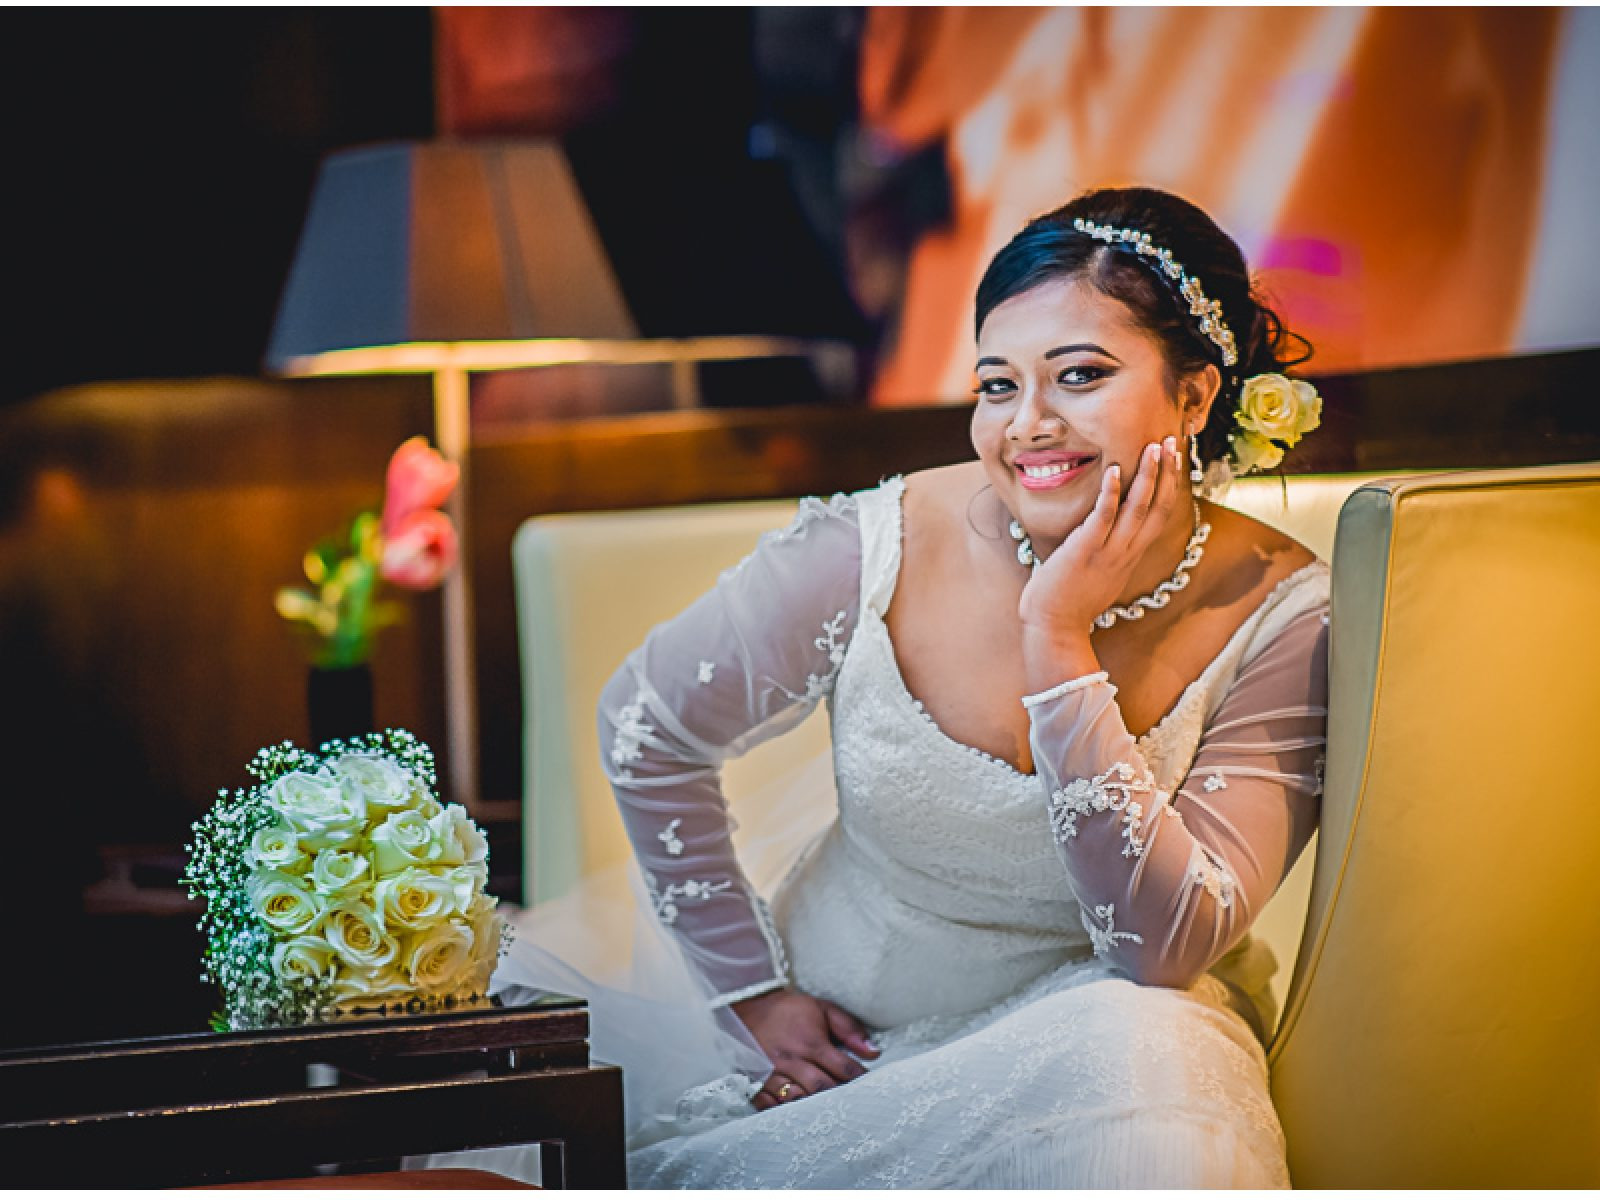 171 1600x1200 - Darshani and Anthony - wedding photographer in London